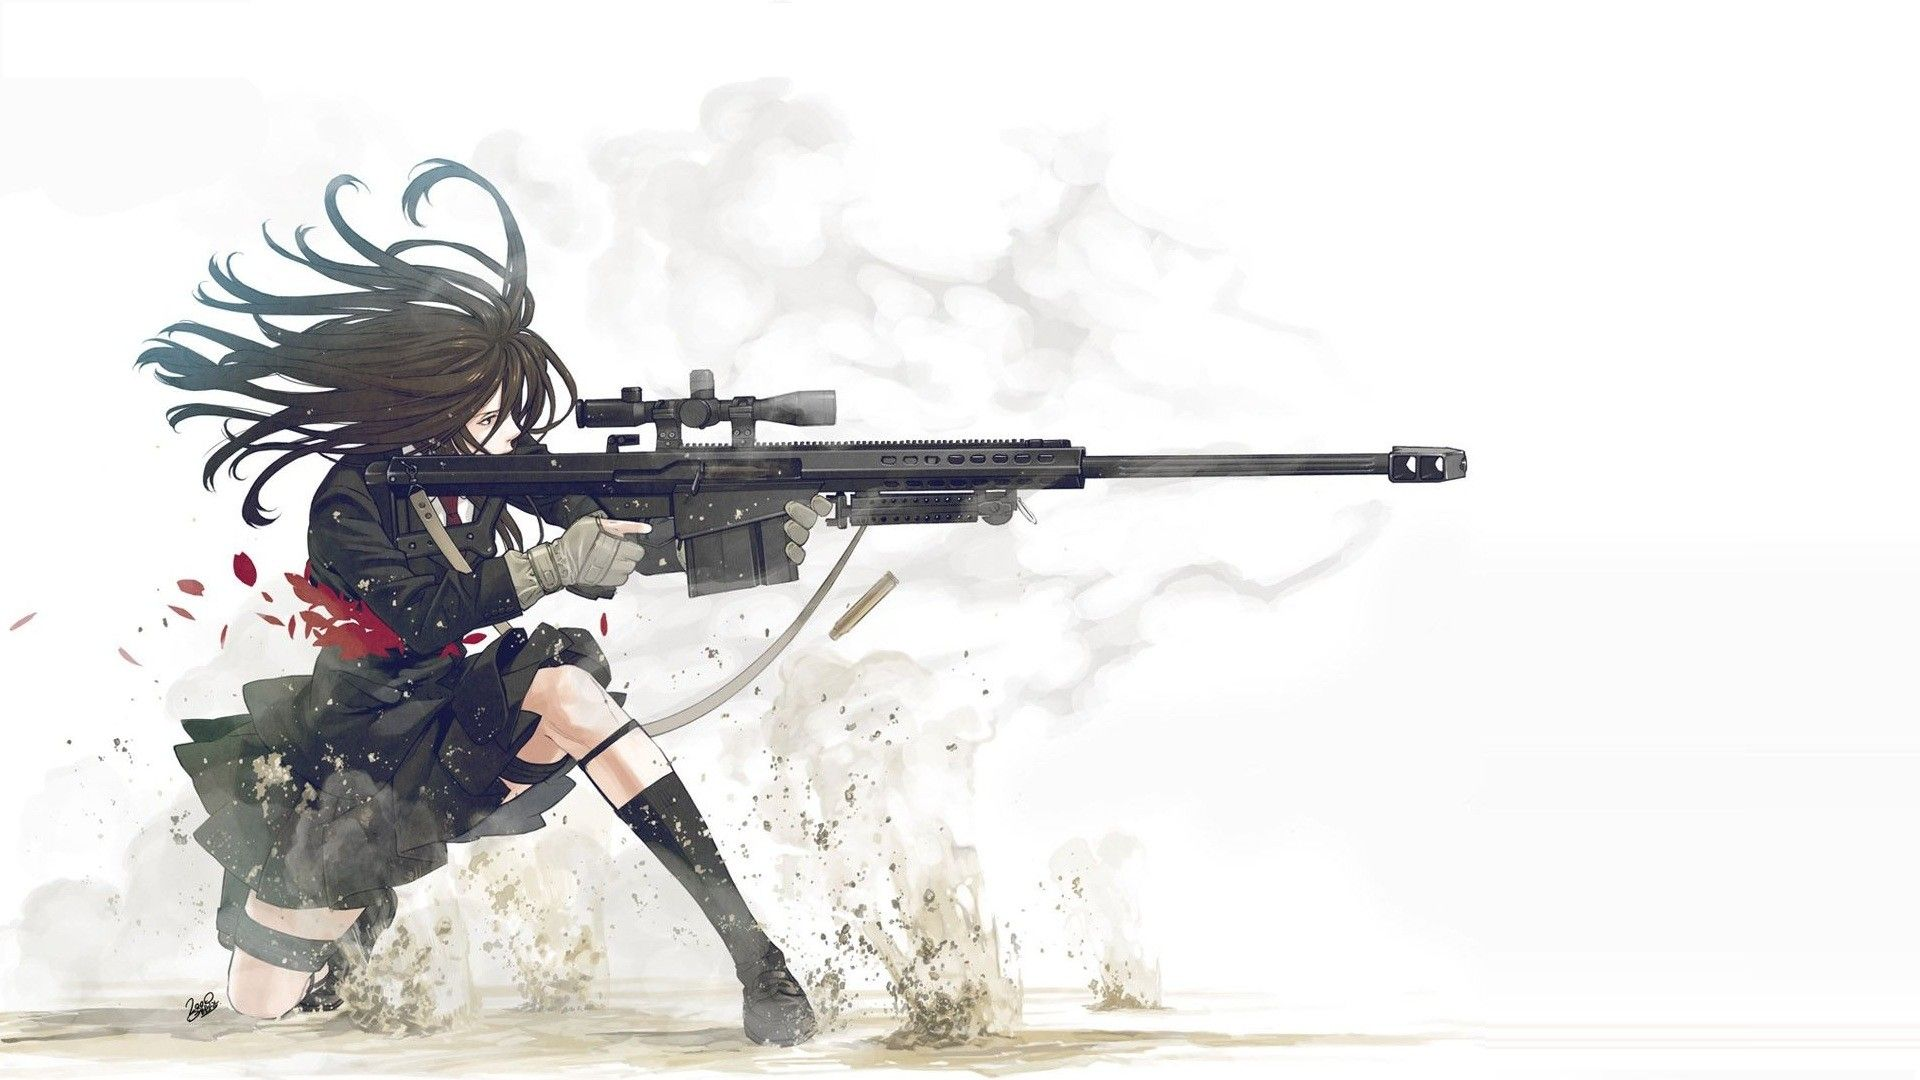 1920x1080 New Anime Girl Gun Wallpaper Design - Anime Wallpaper HD